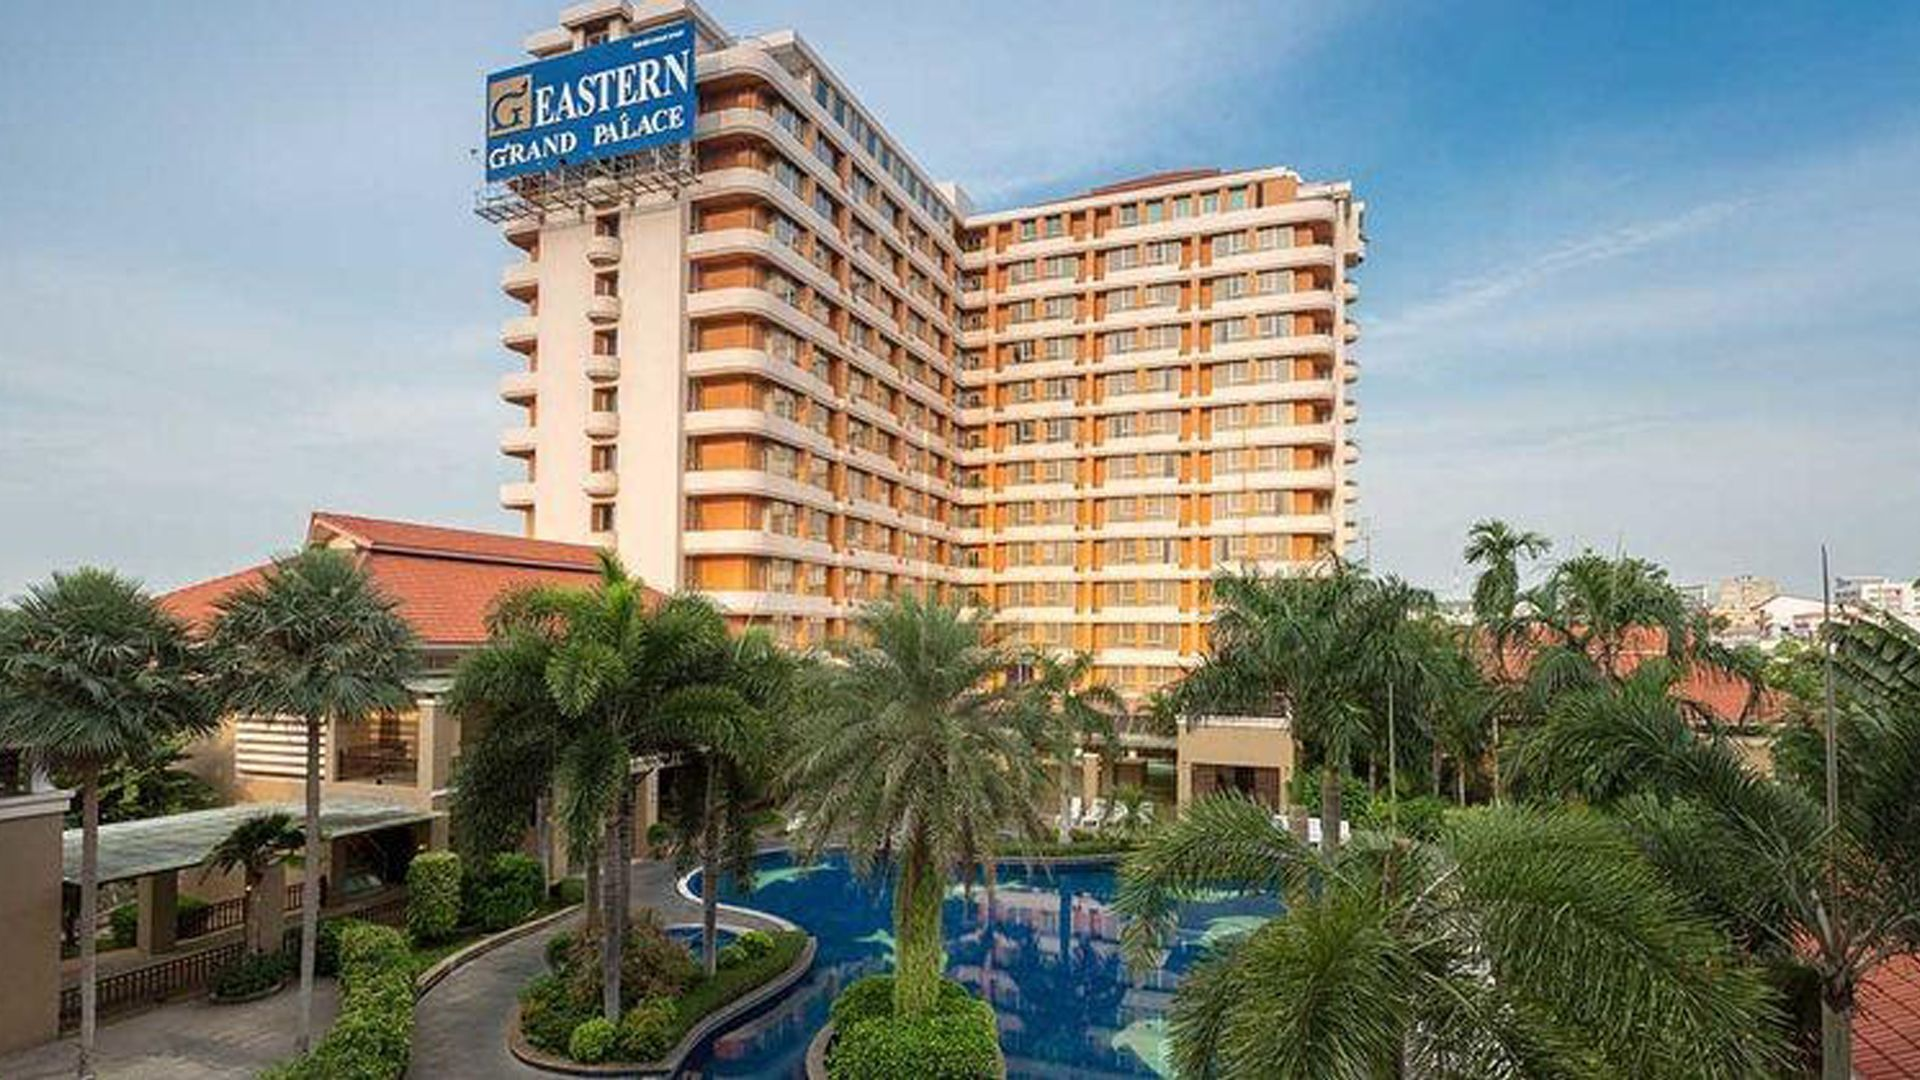 Pragma Hospitality to Manage  349 Key Eastern Grand Palace Hotel Pattaya